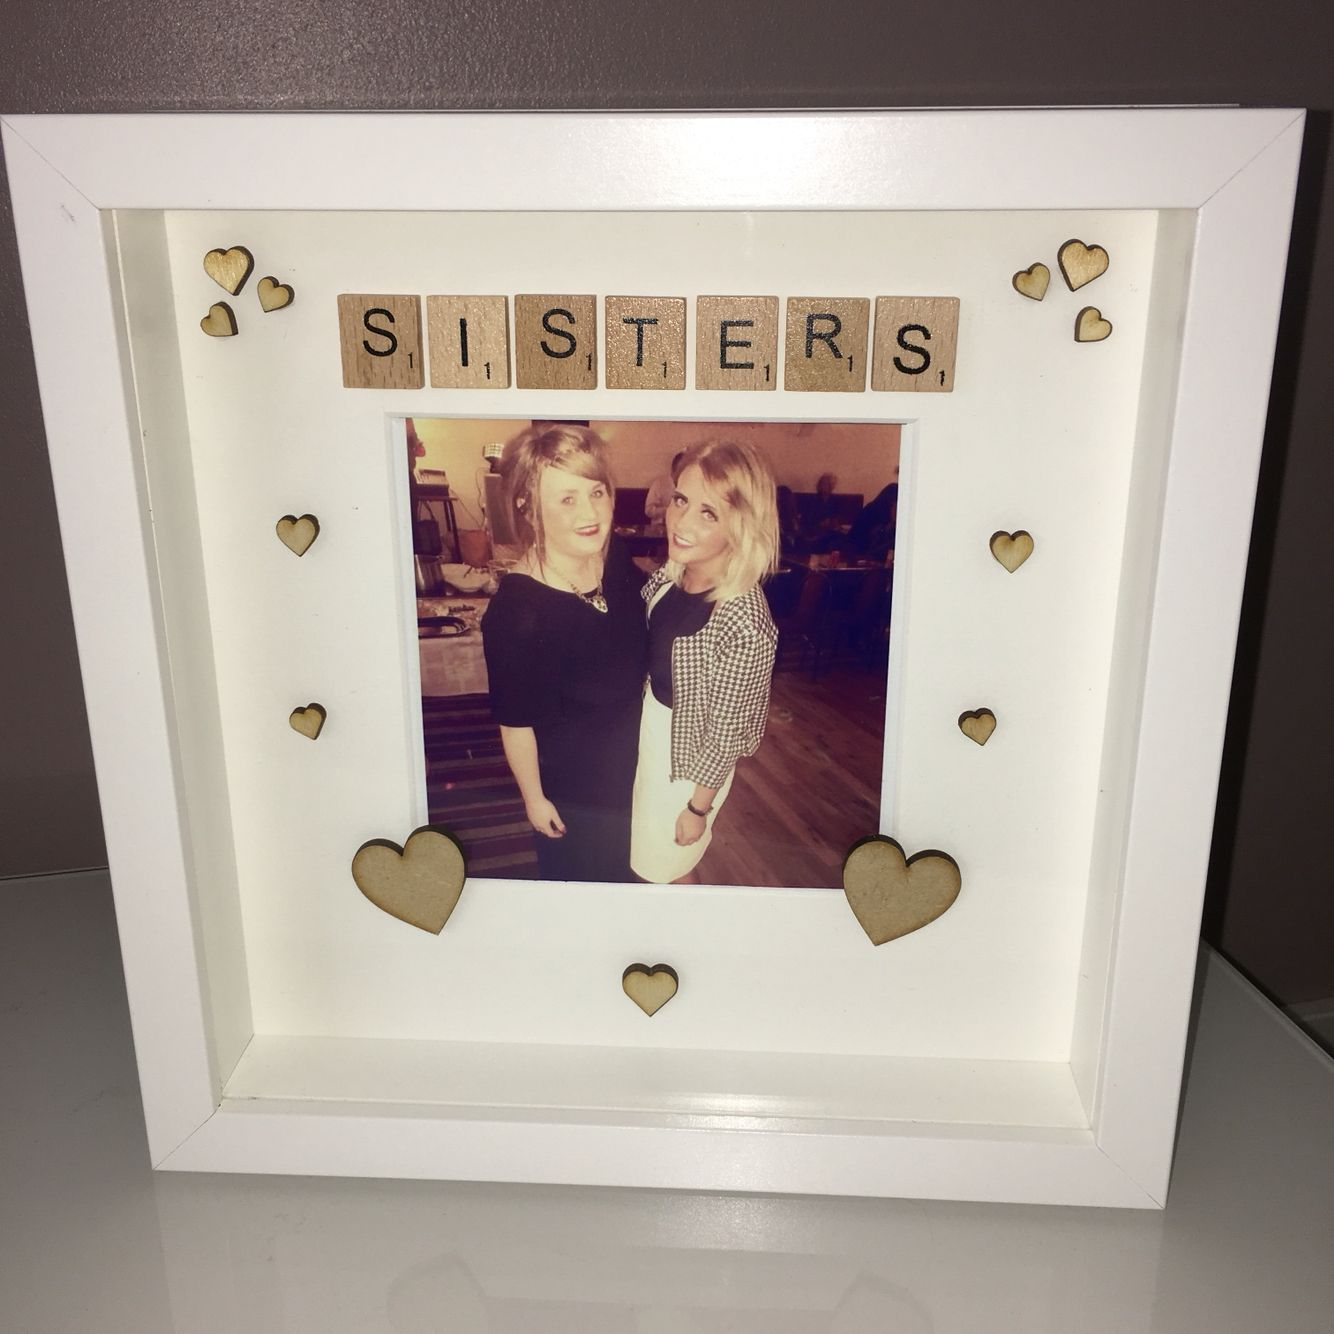 Sister Frame Arts And Crafts Ideas Scrabble Frame Frame